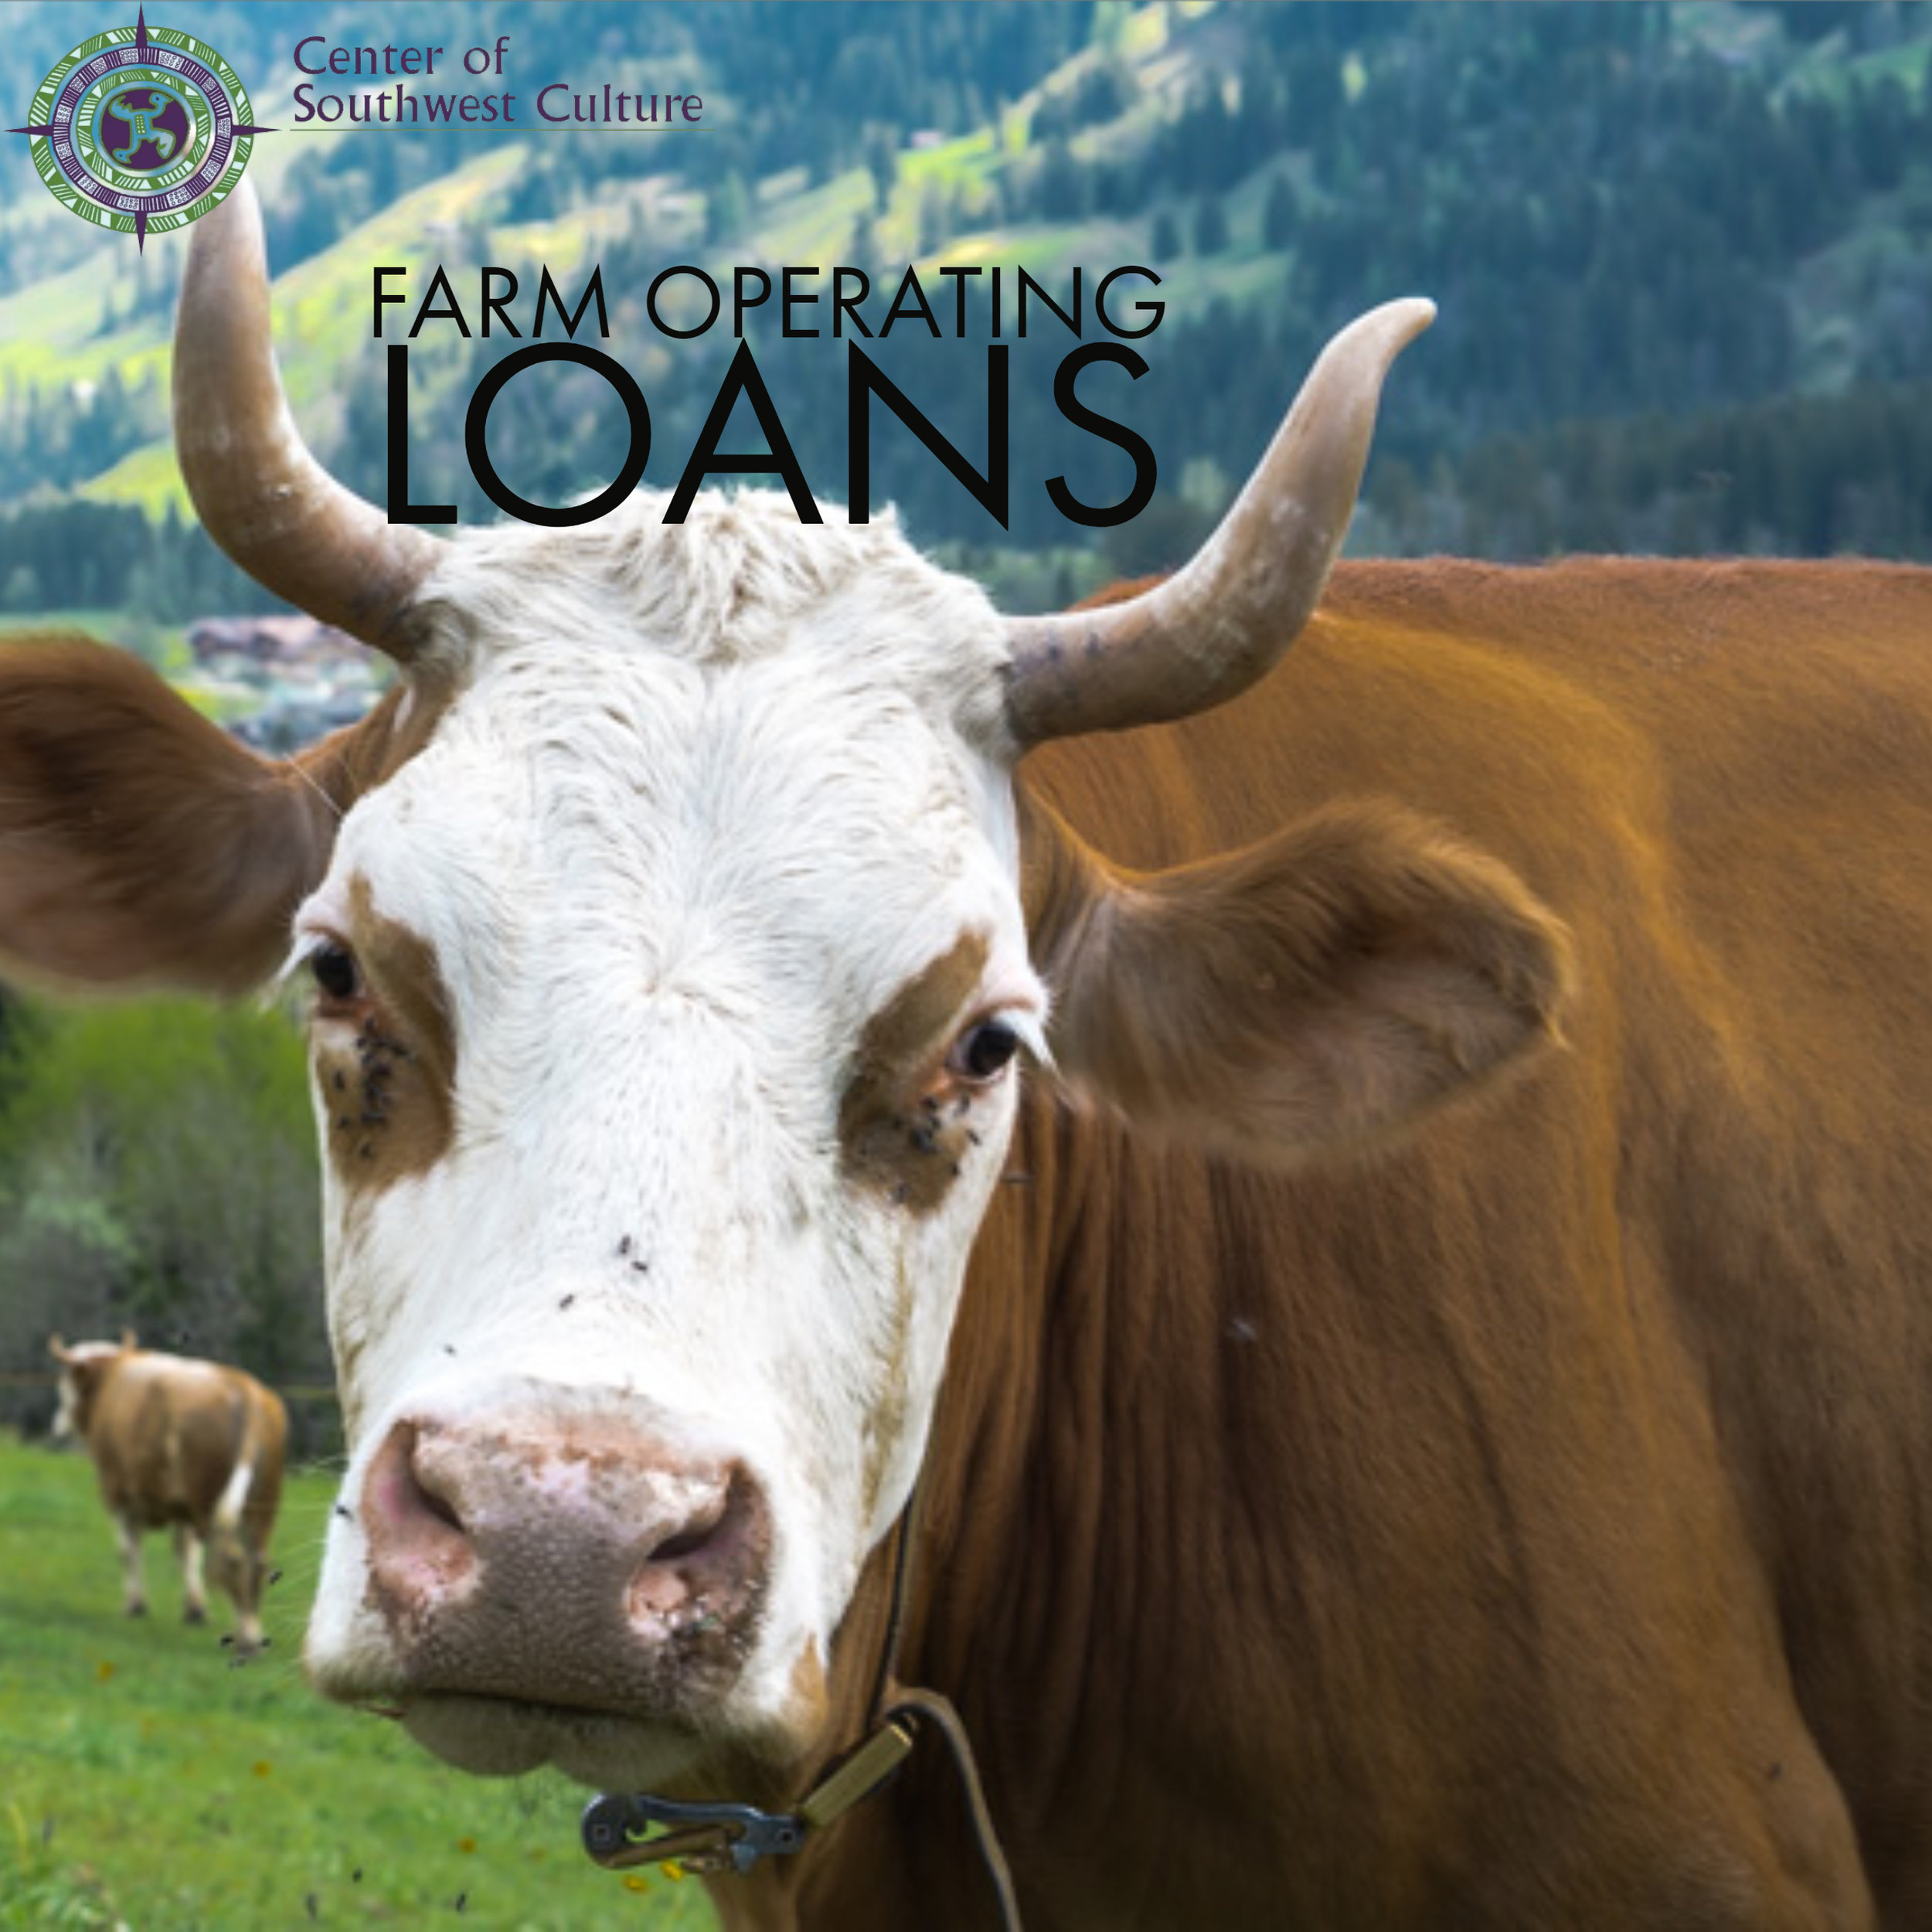 Farm Operating Loans - FSA's Direct farms operating loans are a valuable resource to start, maintain and strengthen a farm or ranch. PDF of information can be found here.